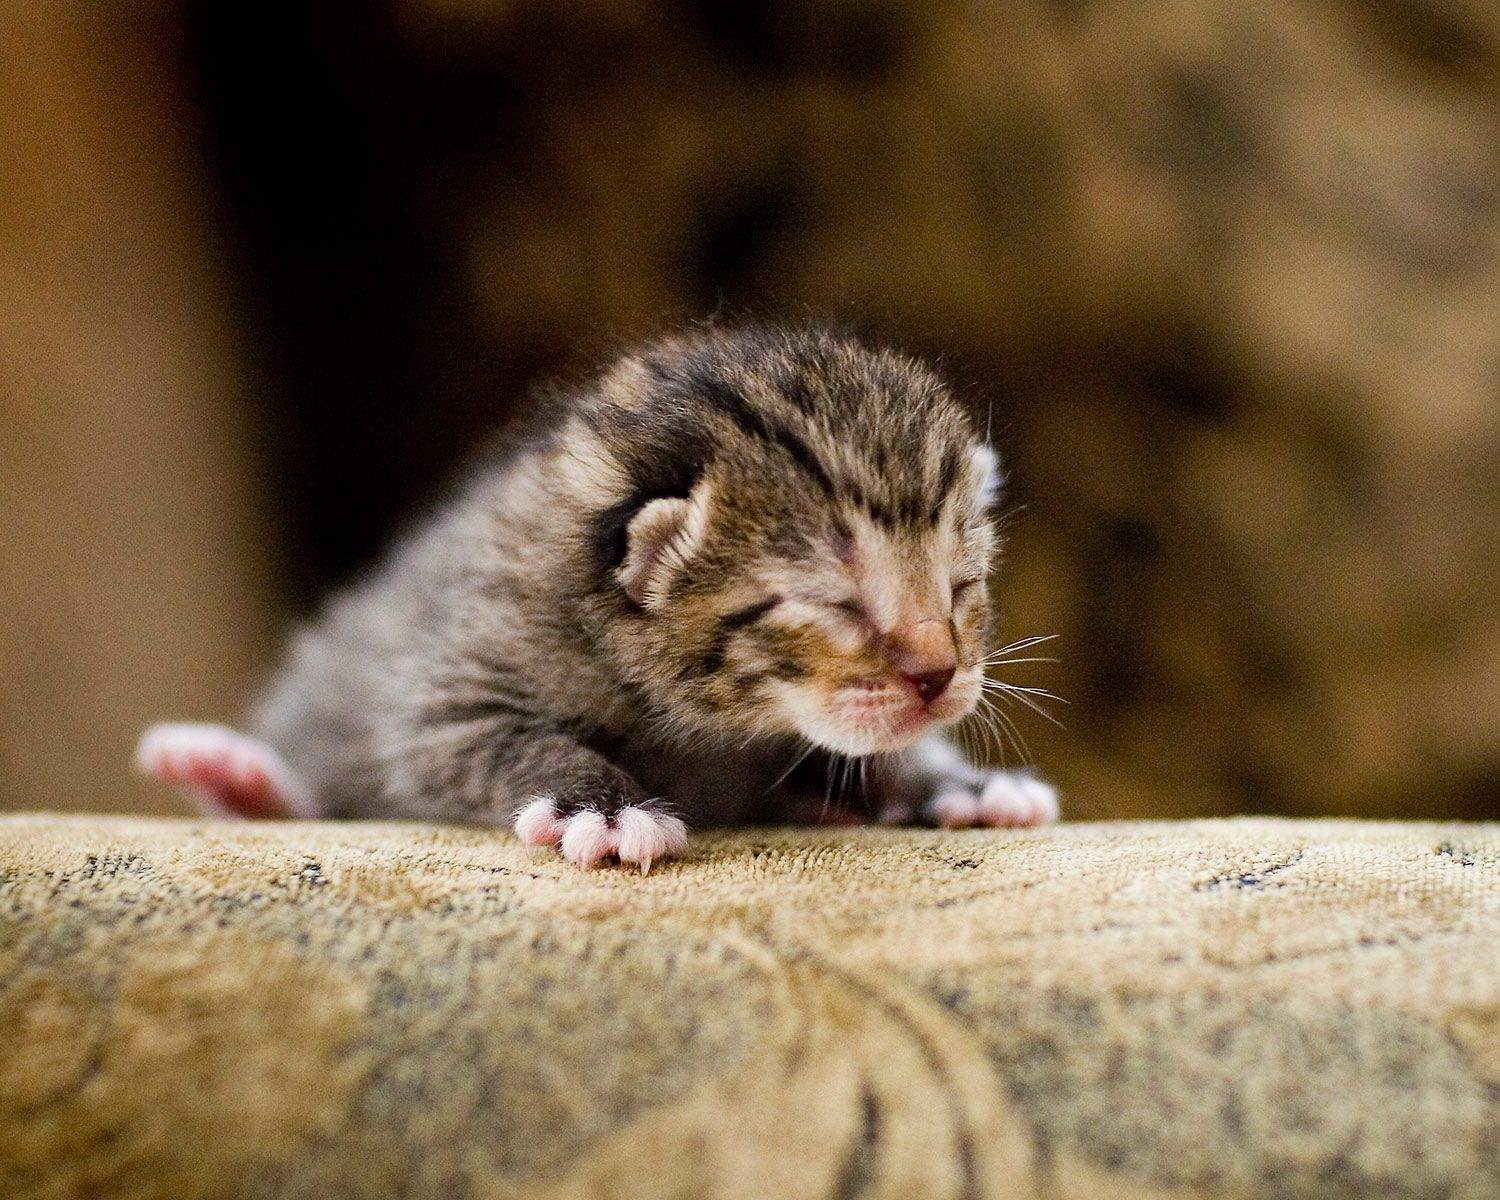 Cute Little Kitten Portrait Photography Ideas Pet Photos And Cat Pictures Outdoors In 2020 Animal Photo Holiday Pet Photos Holiday Pet Photography